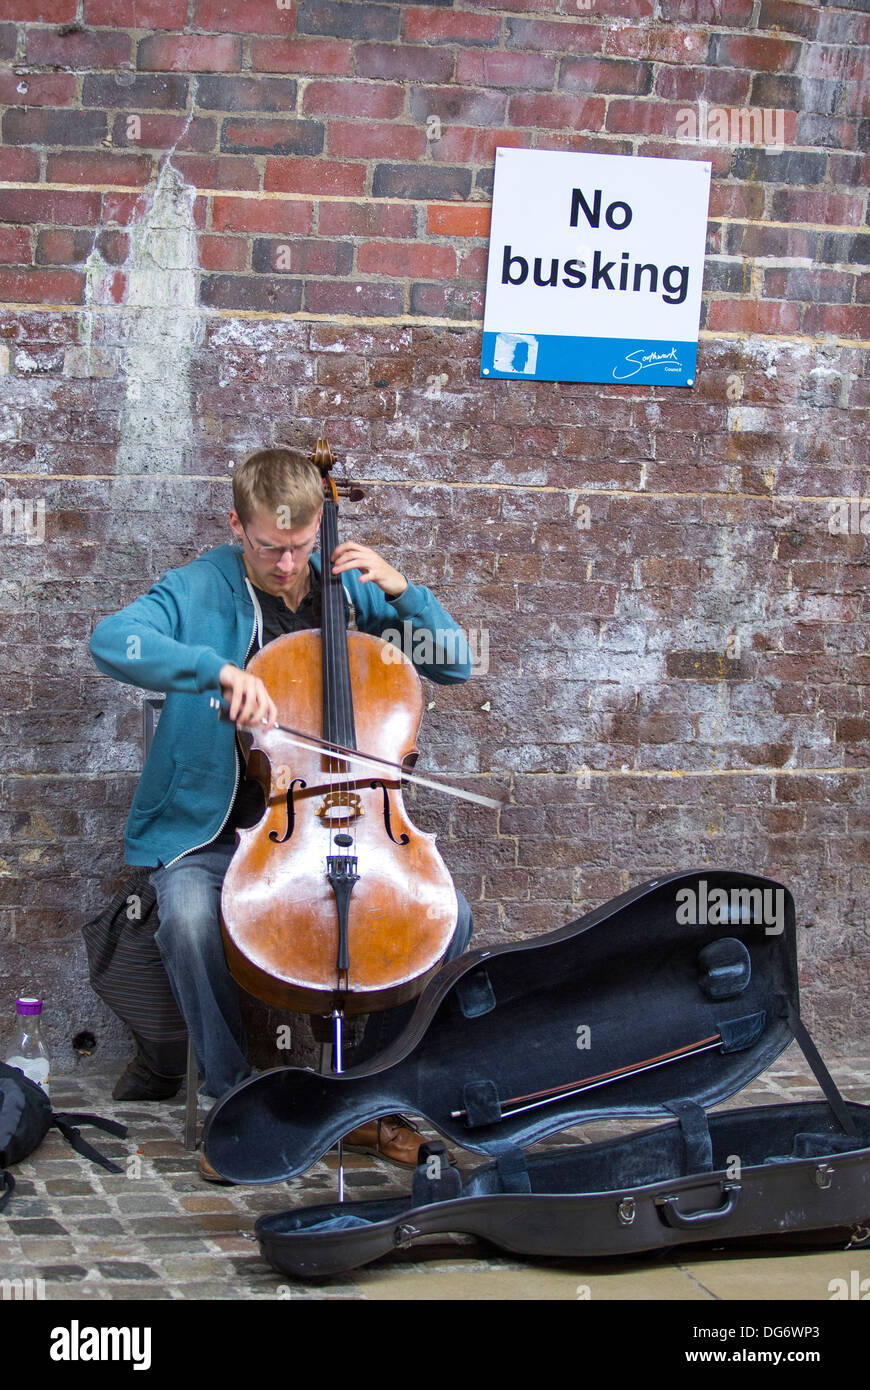 BUSKER PLAYING NEAR A NO BUSKING SIGN - Stock Image